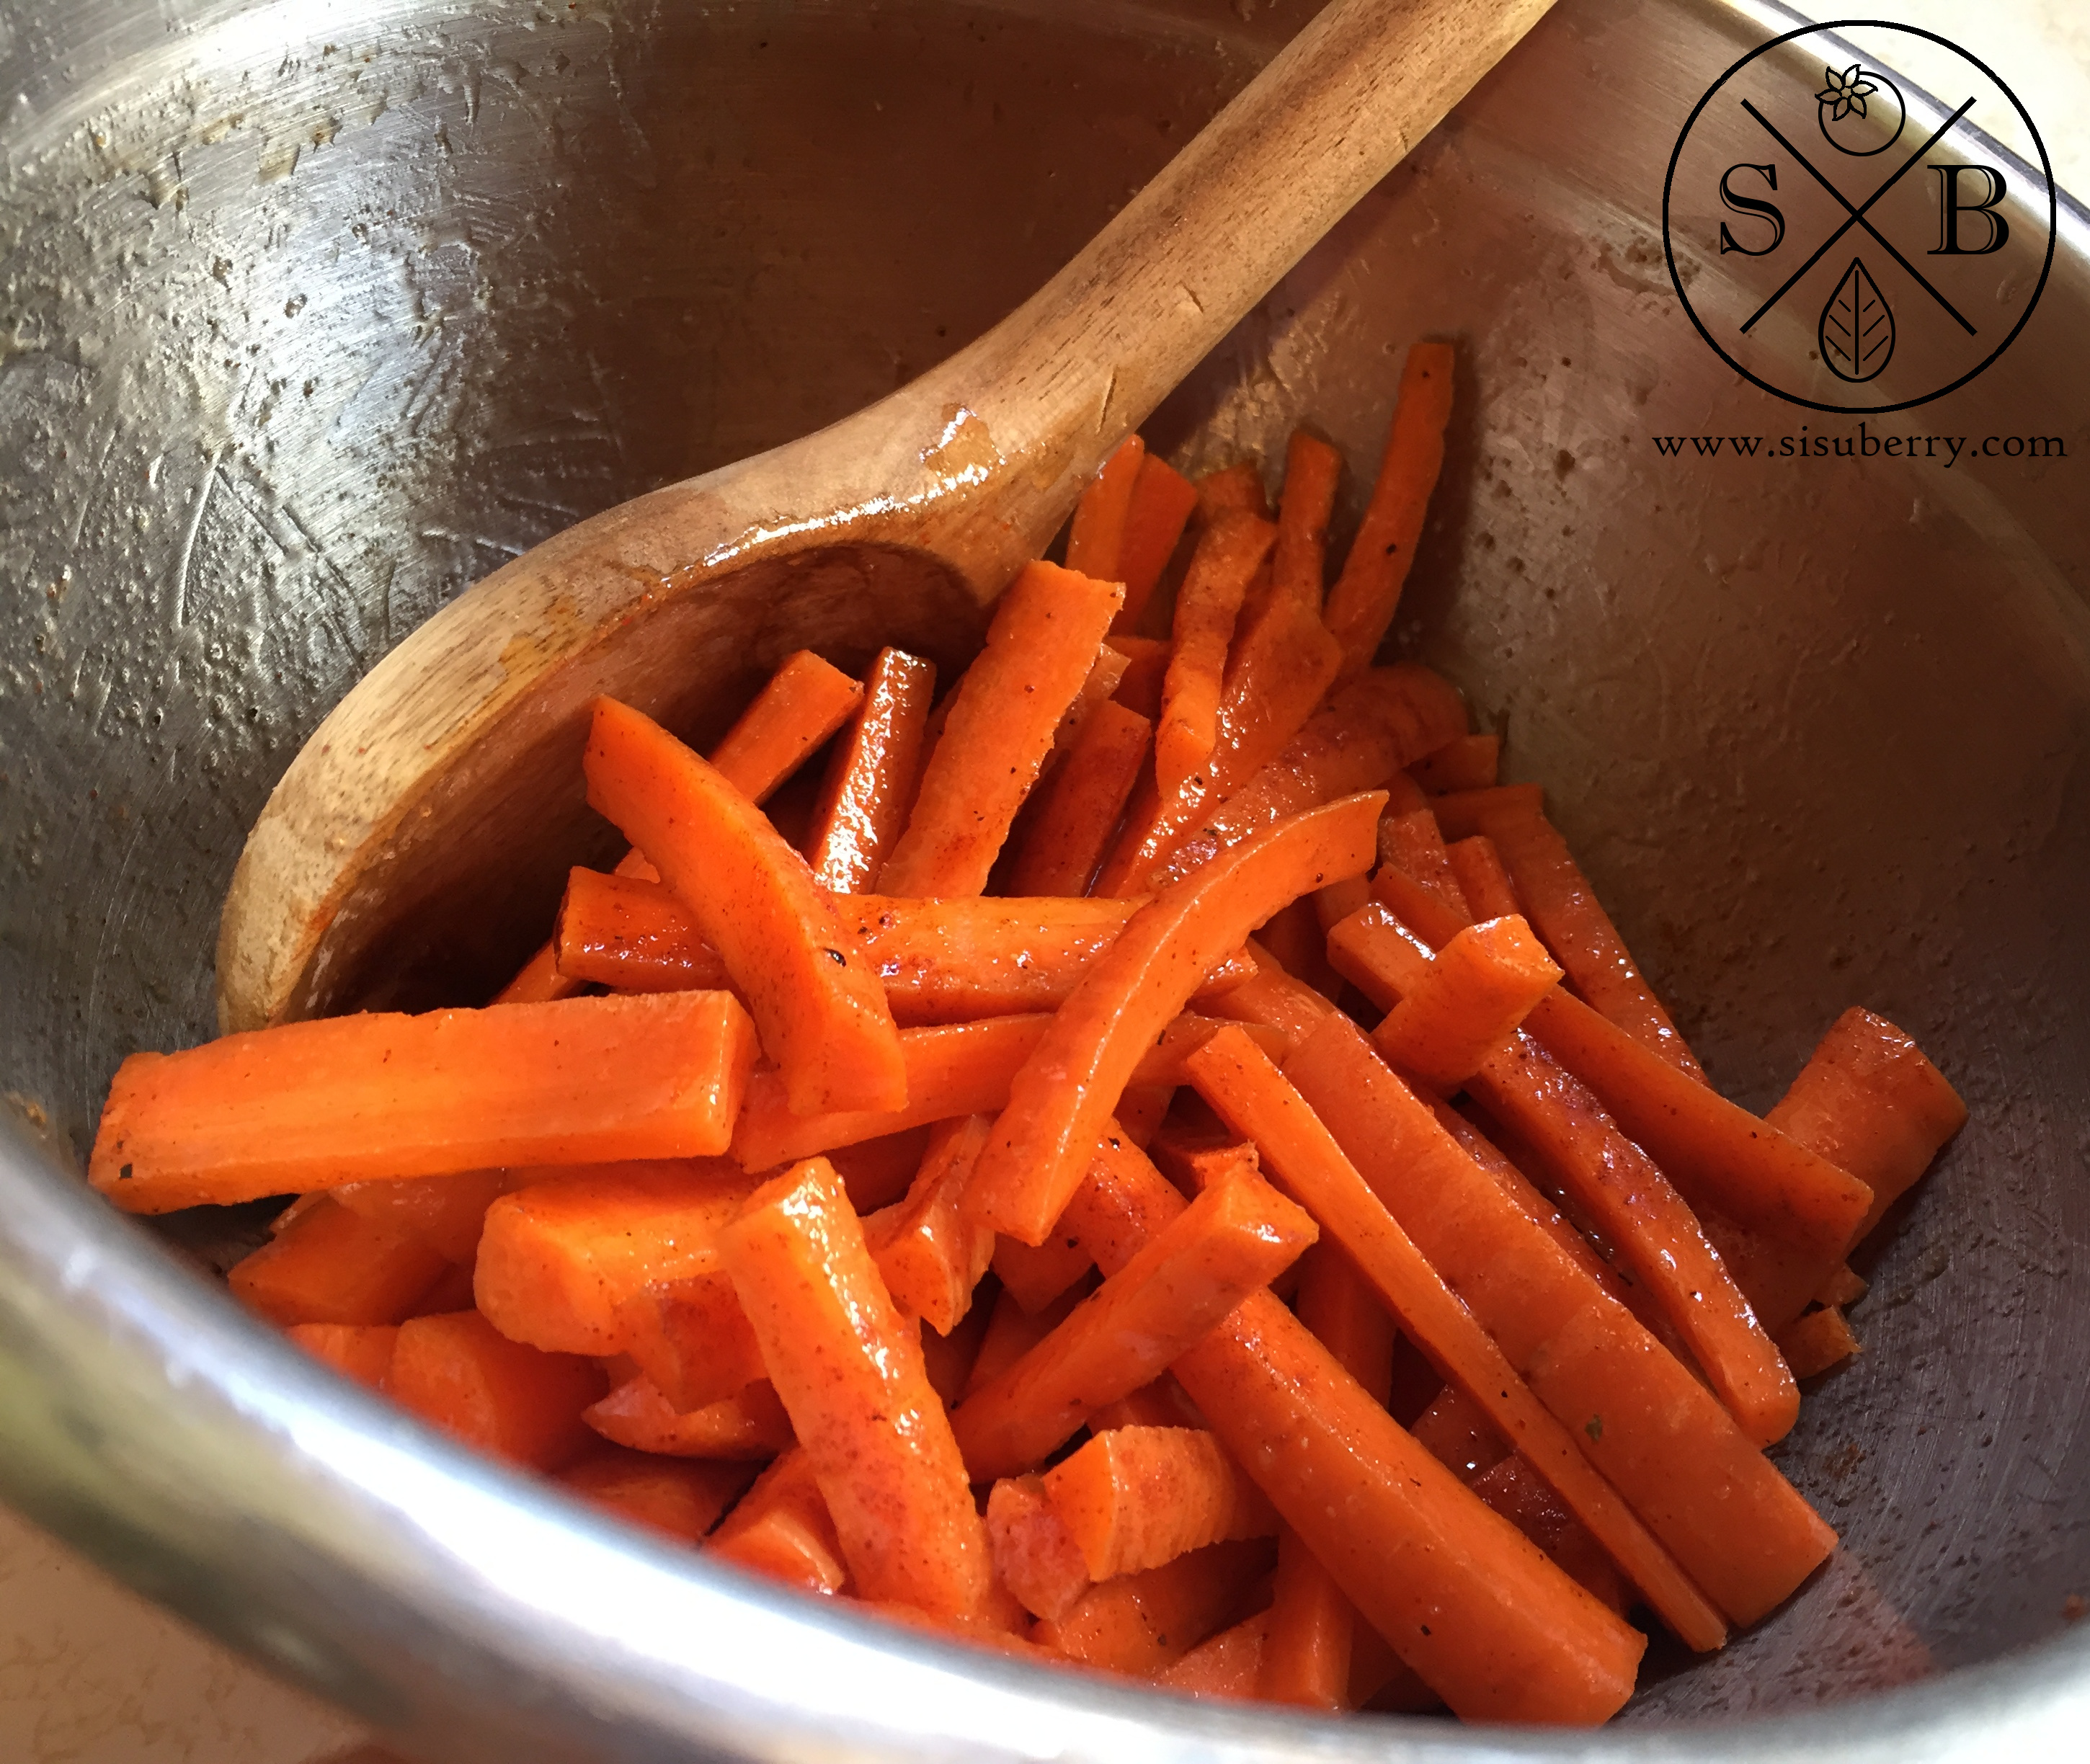 Toss carrots with oil and seasoning